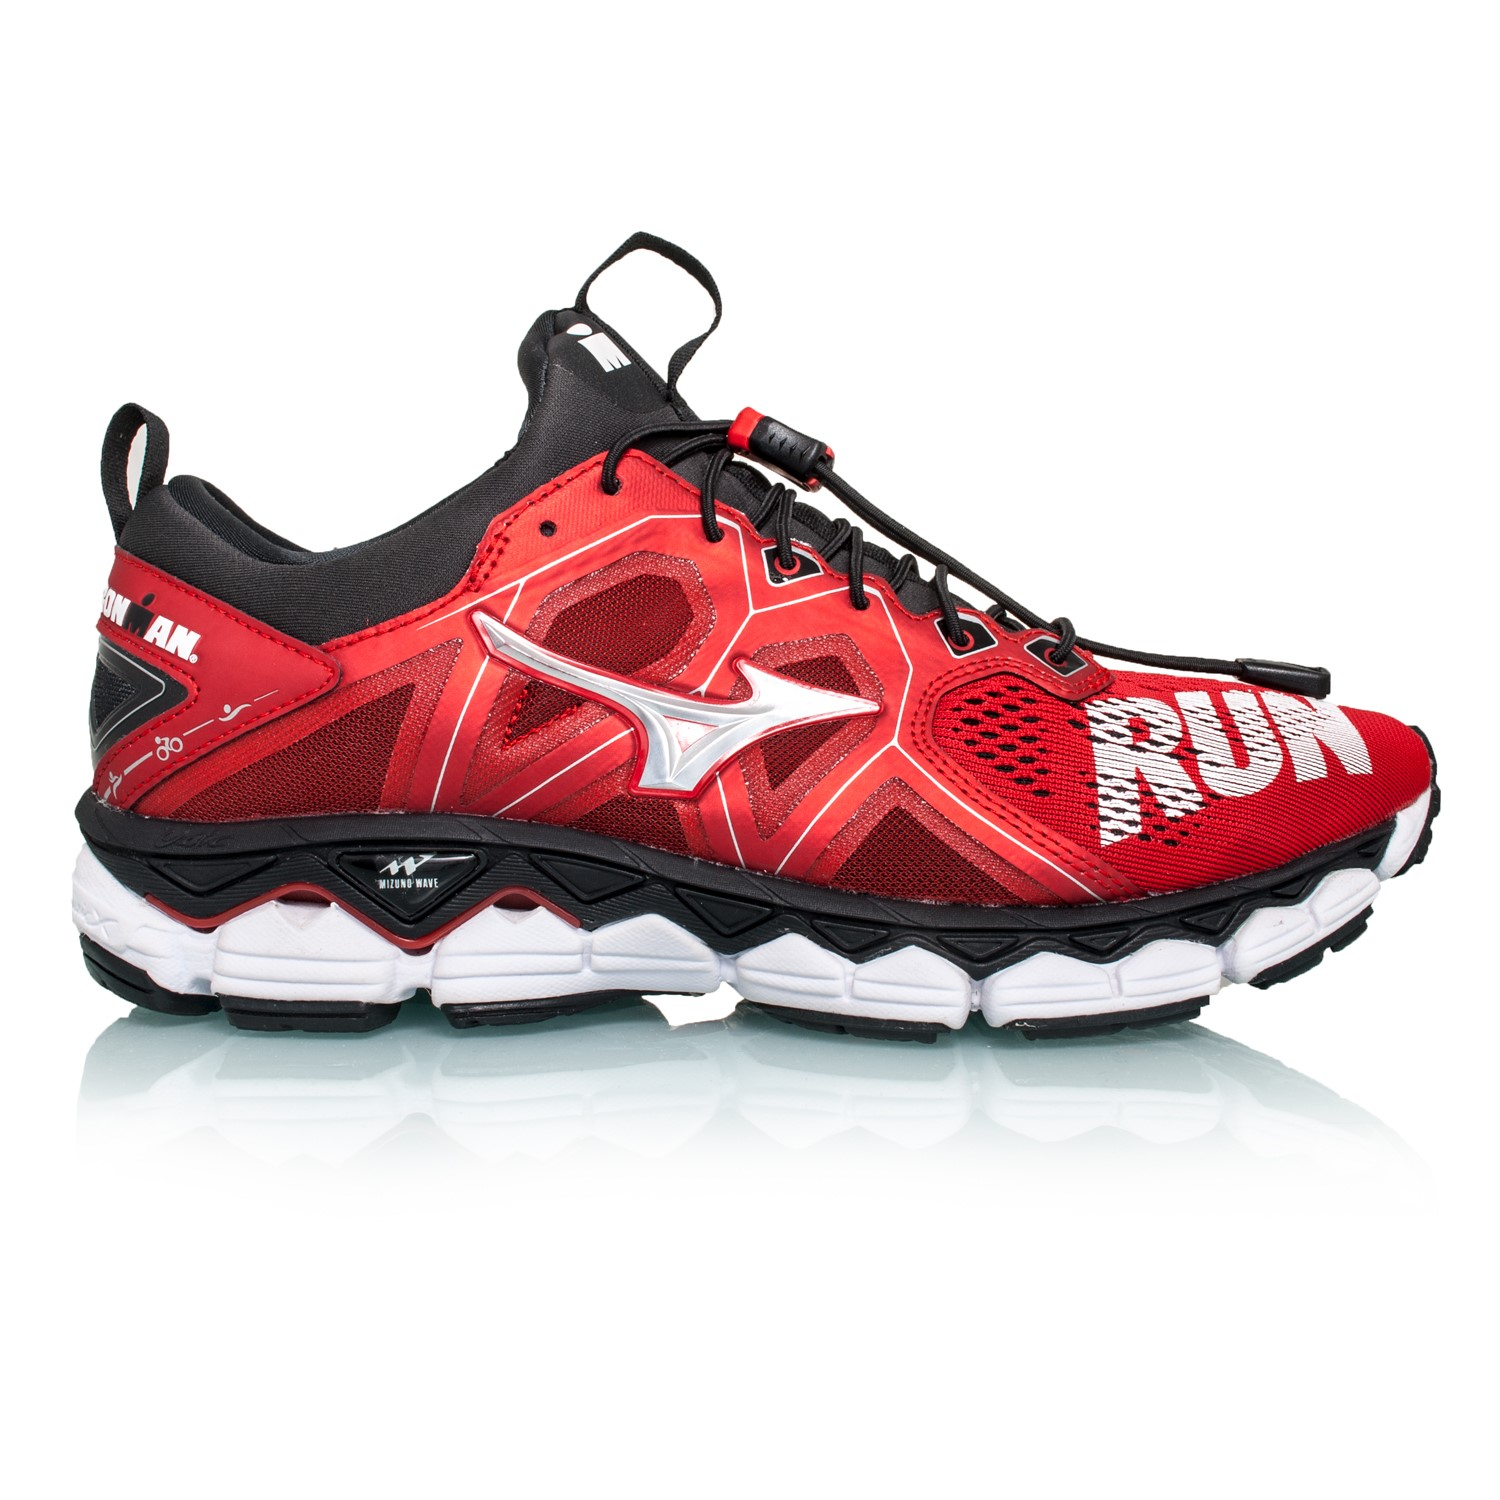 7a3d75a50b1 Mizuno Wave Sky 2 Tri IronMan Edition - Unisex Running Shoes - Red Silver